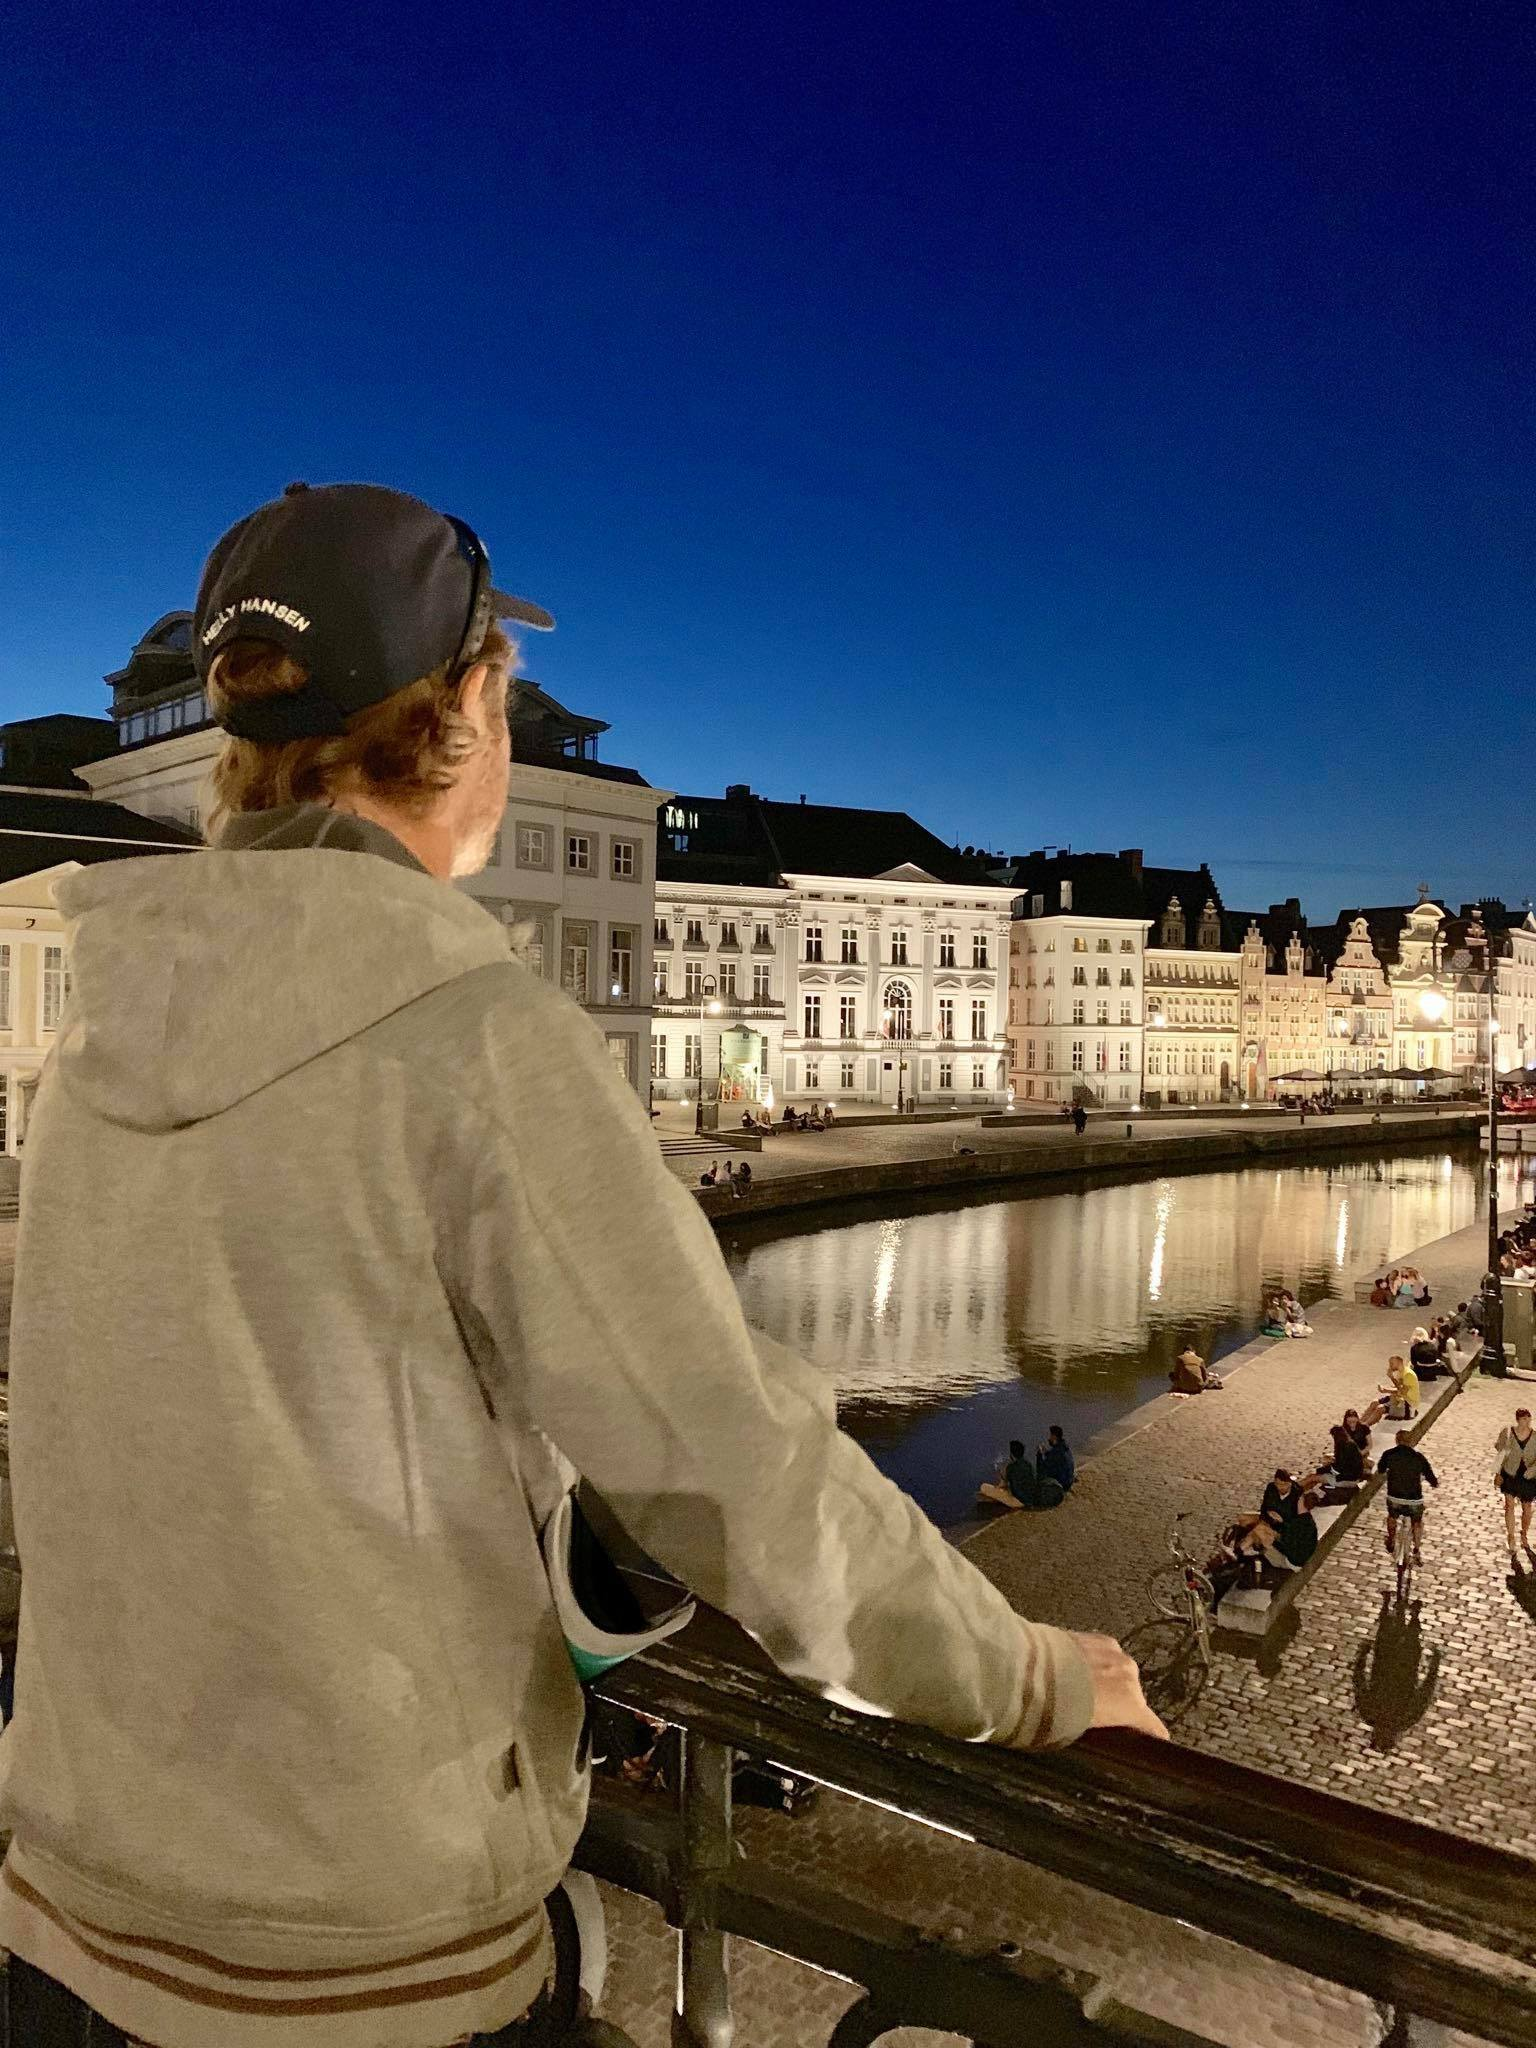 Things to Do in Gent, Belgium